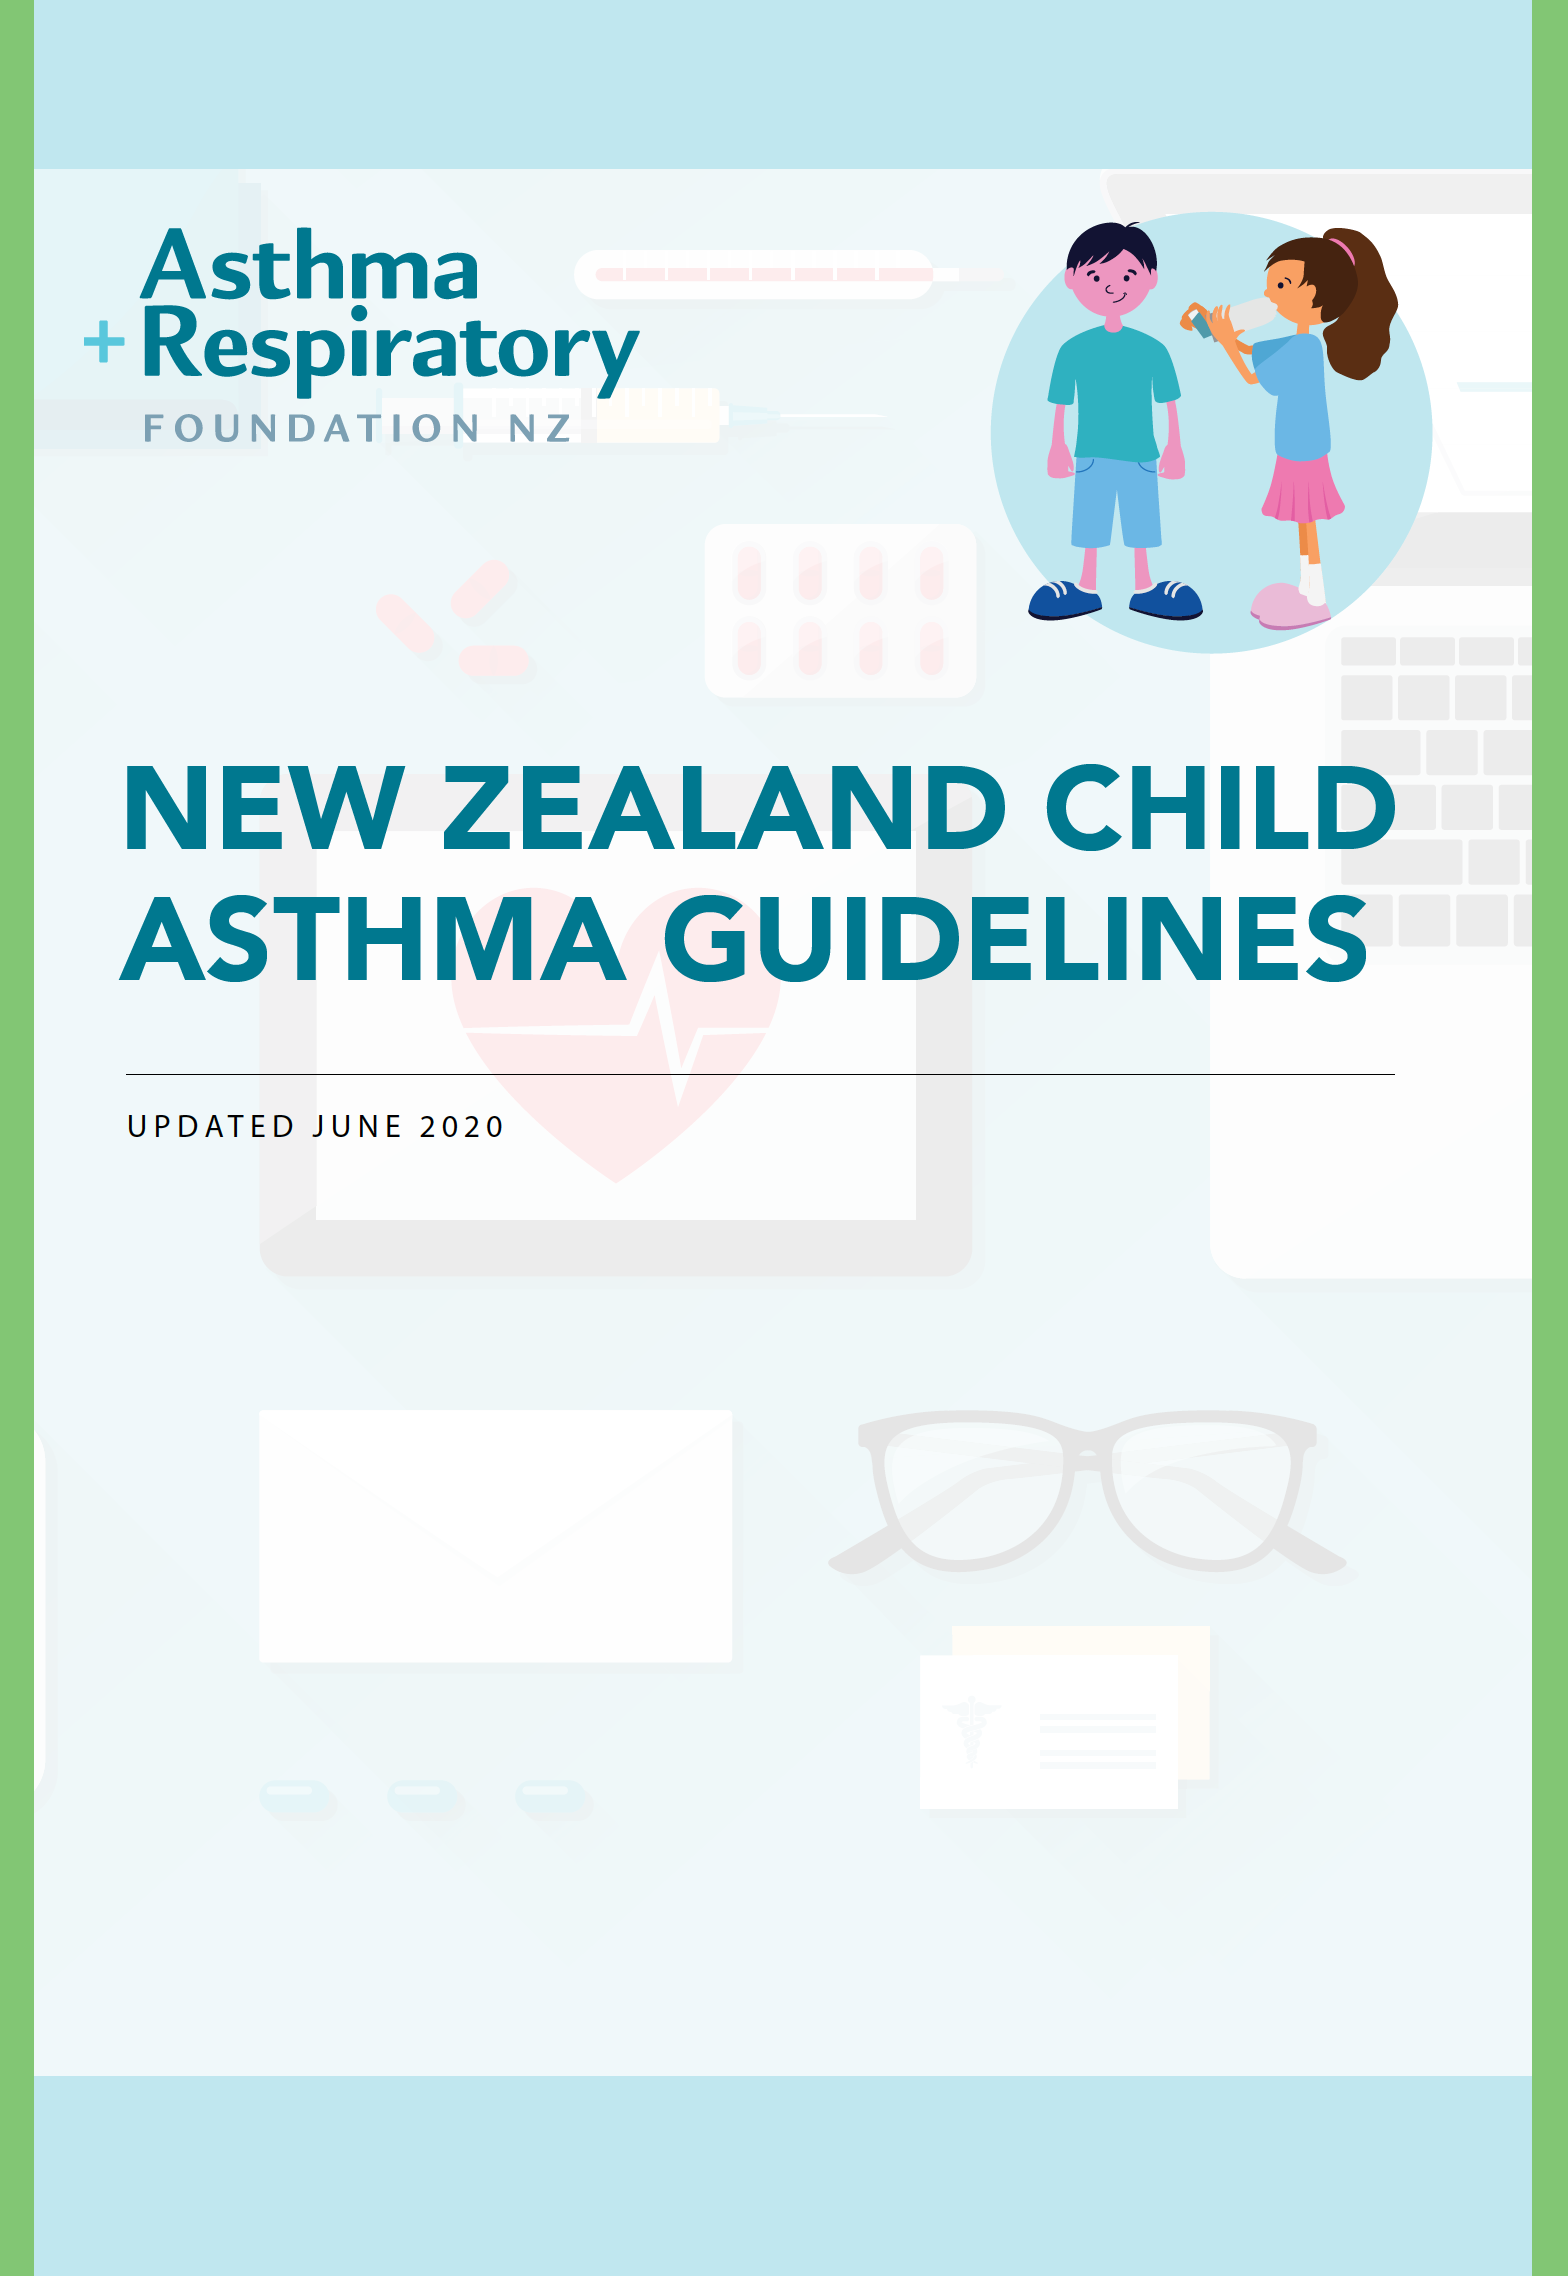 NZ Child Asthma Guidelines